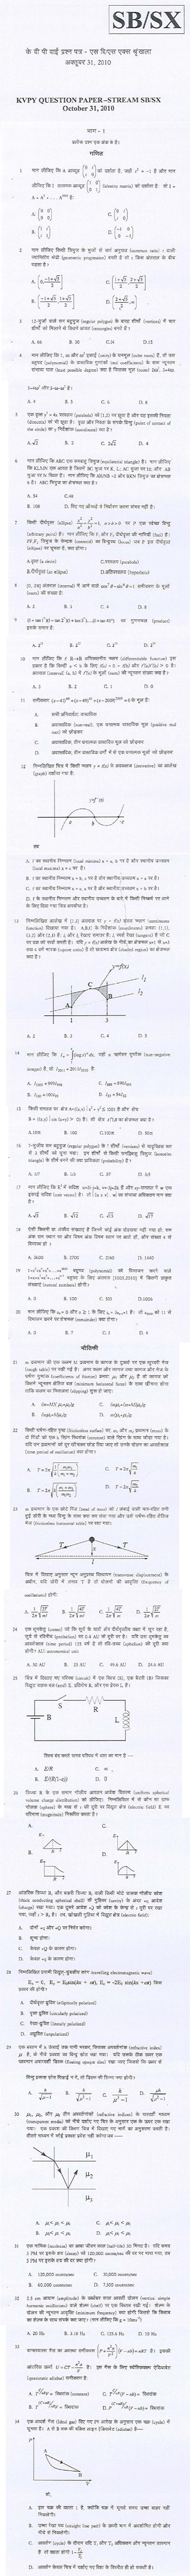 KVPY 2010 SB / SX Question Papers (Hindi Version)